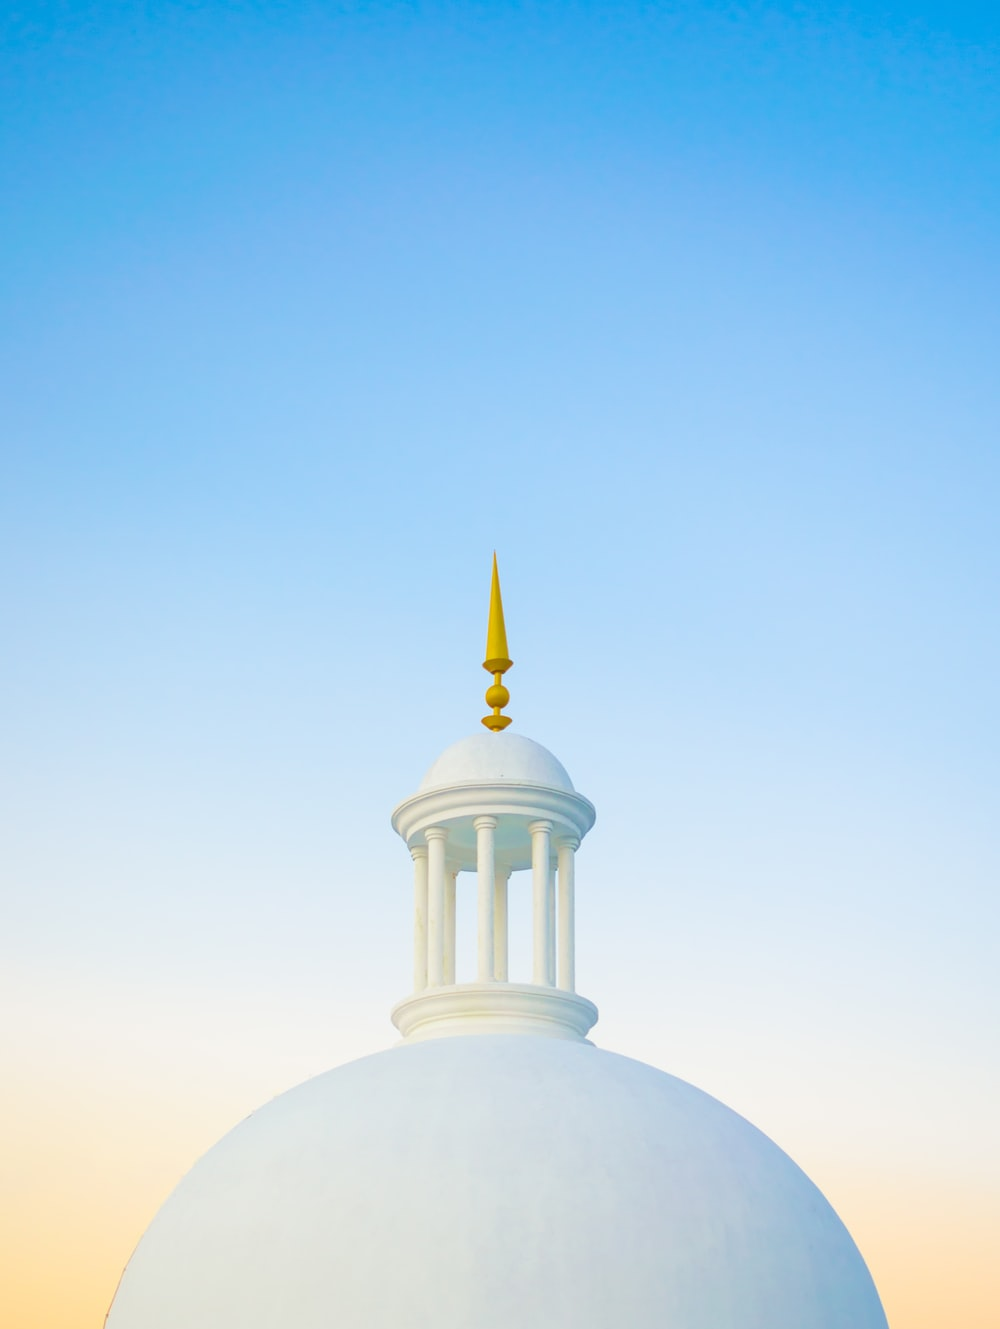 white dome building under blue sky during daytime